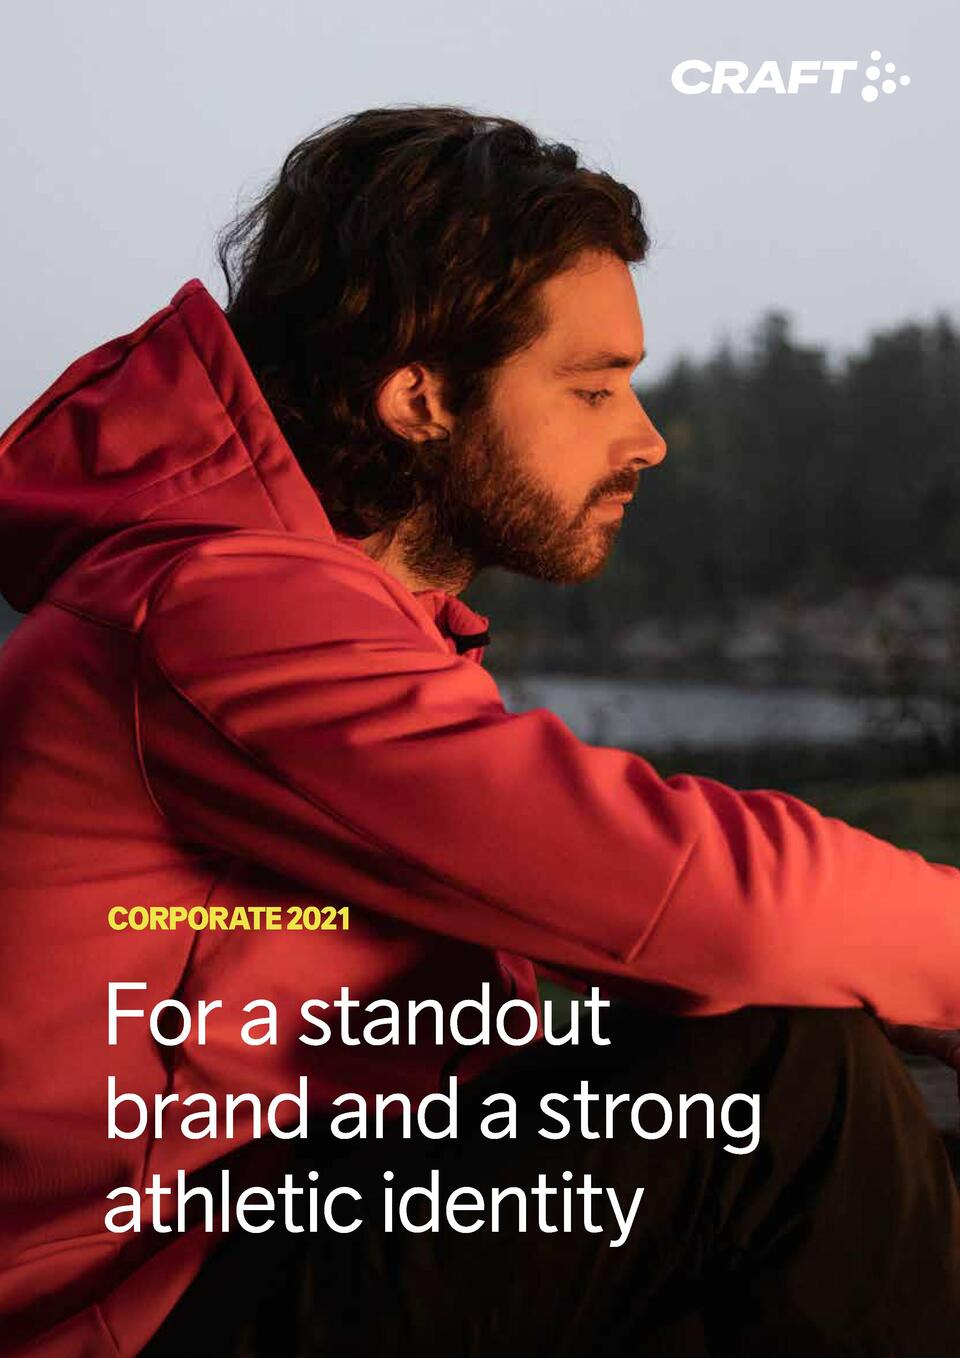 CORPORATE 2021  For a standout brand and a strong athletic identity